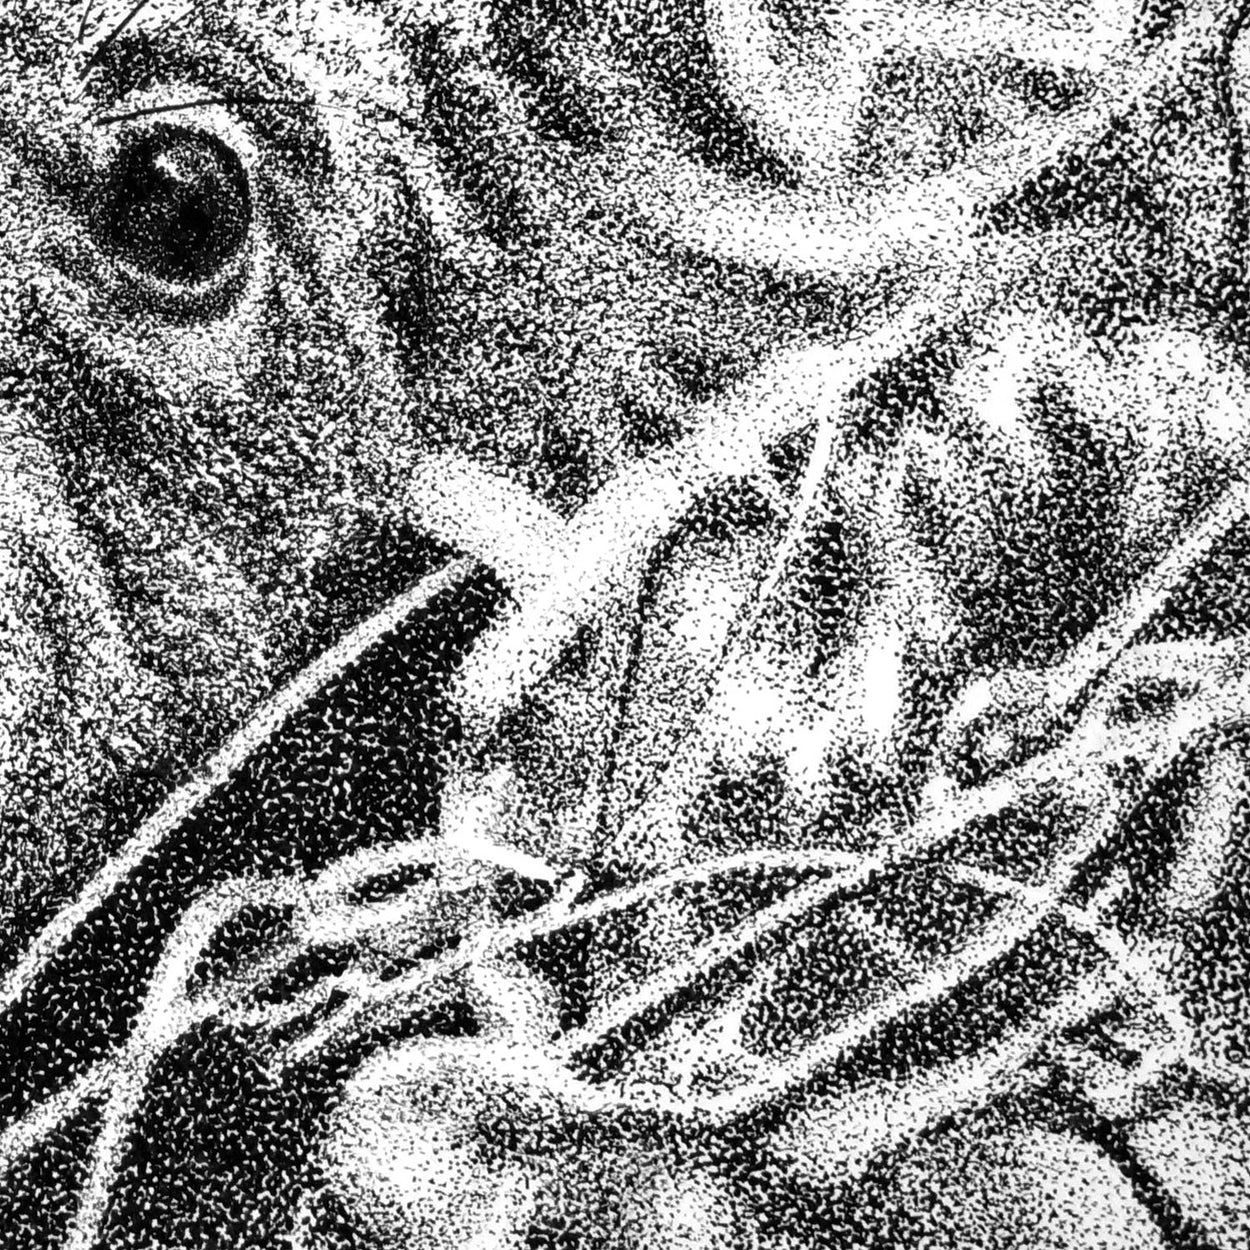 Koala Pen Stippling Close-up - The Thriving Wild